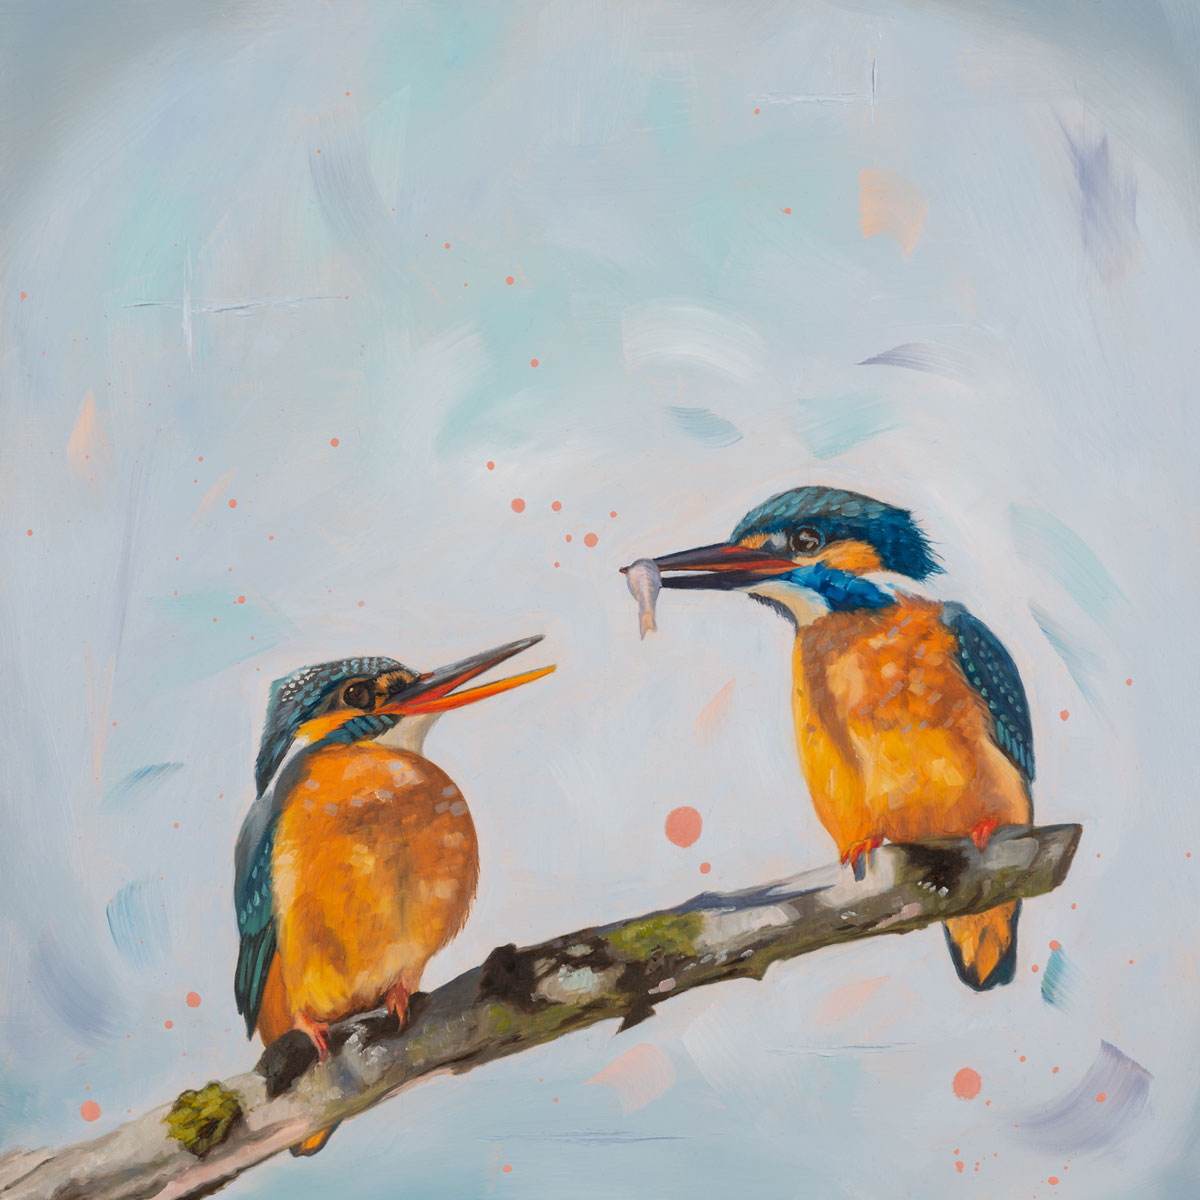 The gift - original oil painting of kingfishers